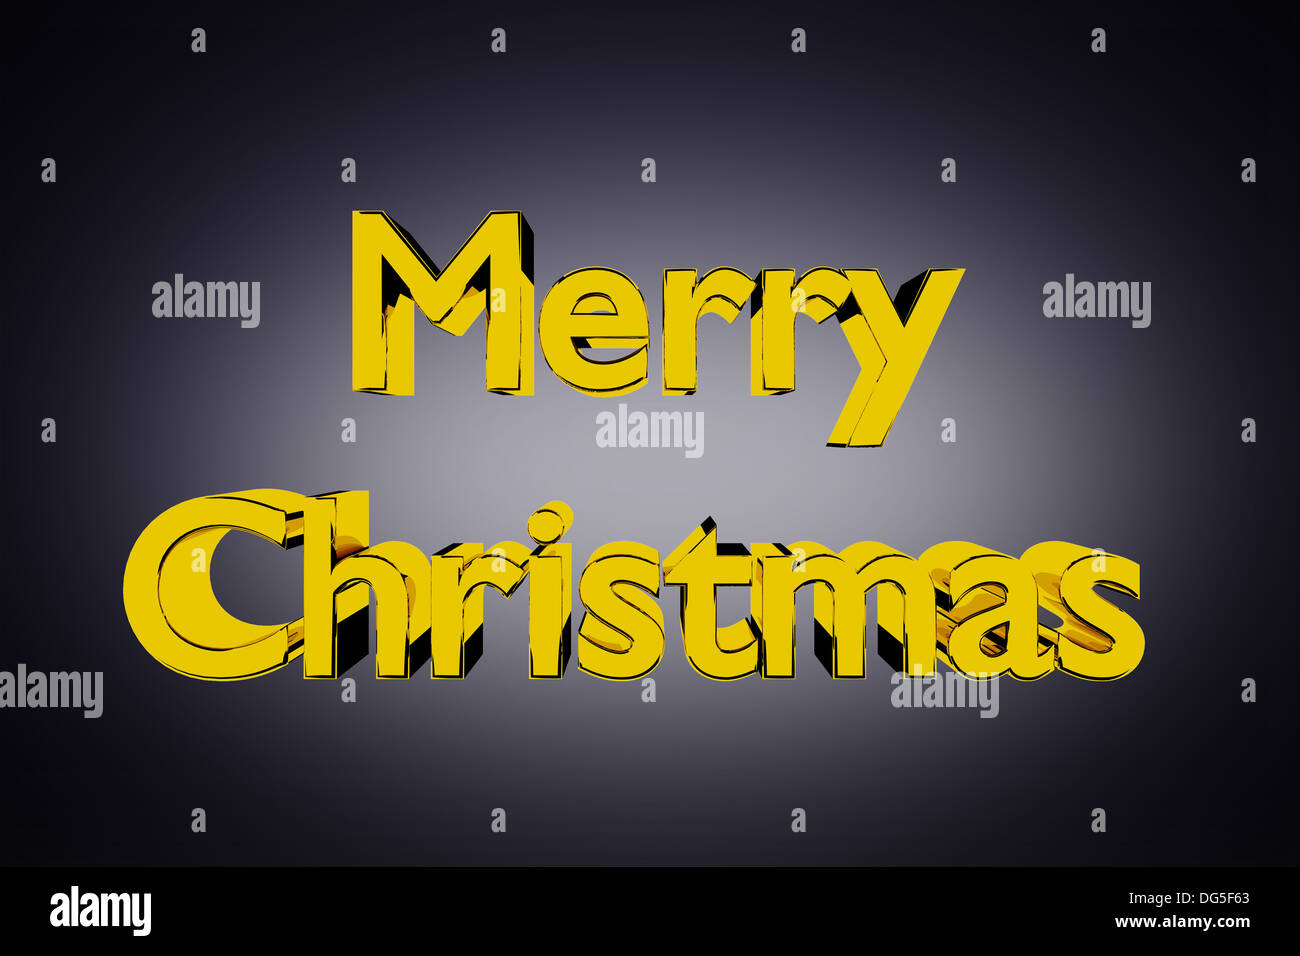 3D Illustration of golden Merry Christmas lettering on a grey background - Stock Image